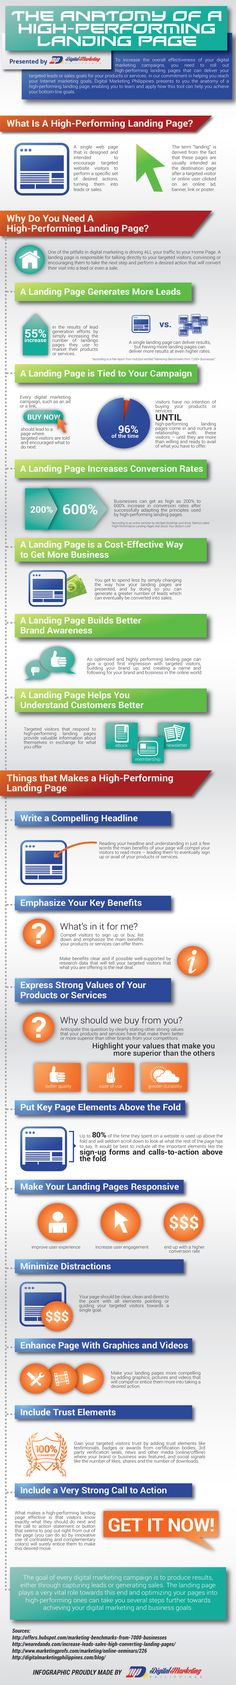 The Anatomy of a High-Performing Landing Page #landingpage #conversion #webconversion #optimization #conversionrate #conversionoptimization #conversionrateoptimization tips and tricks #infographic